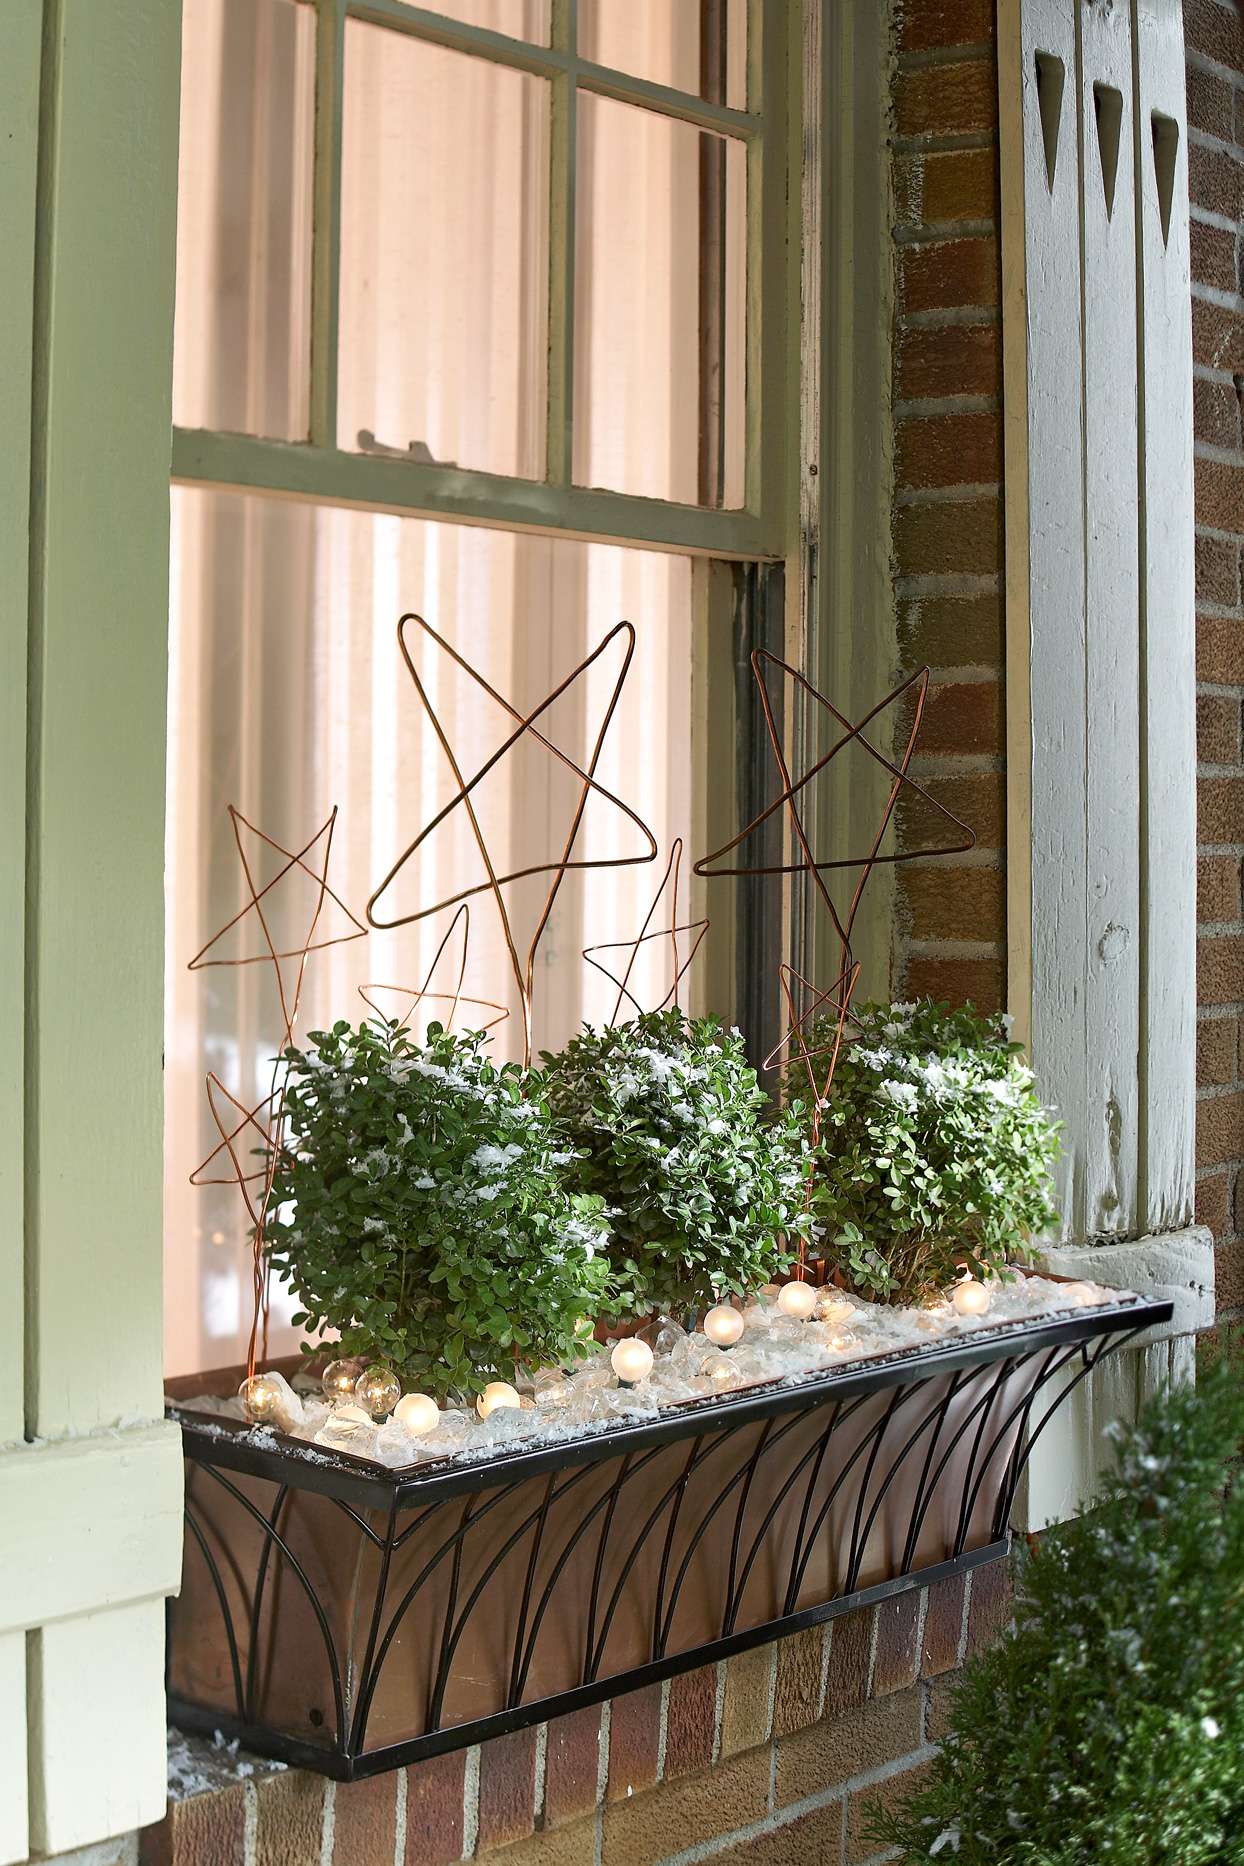 wintry window sill planter with wire stars